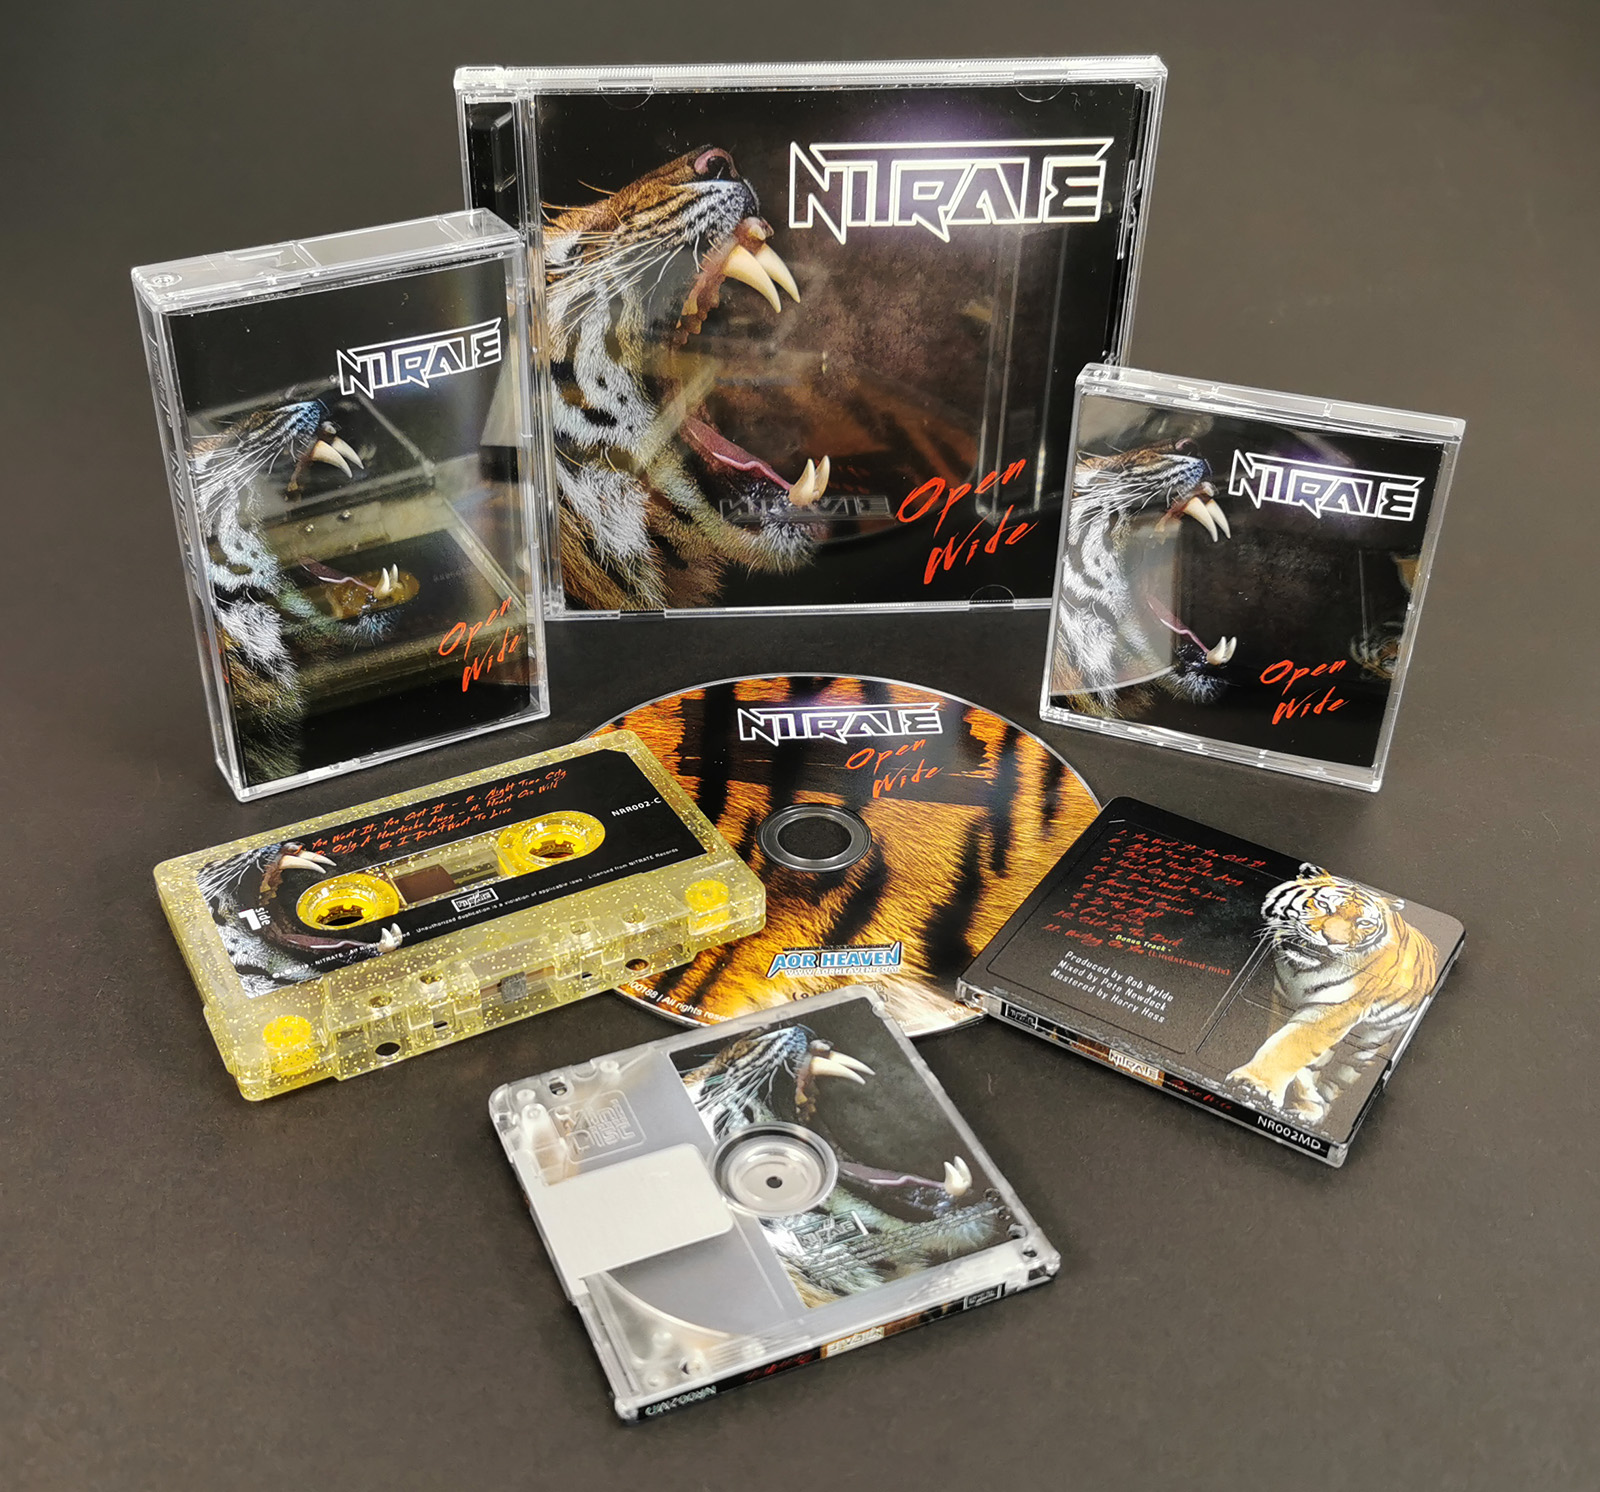 Gold glitter cassettes and MiniDiscs produced for Nitrate and their 'Open Wide' album